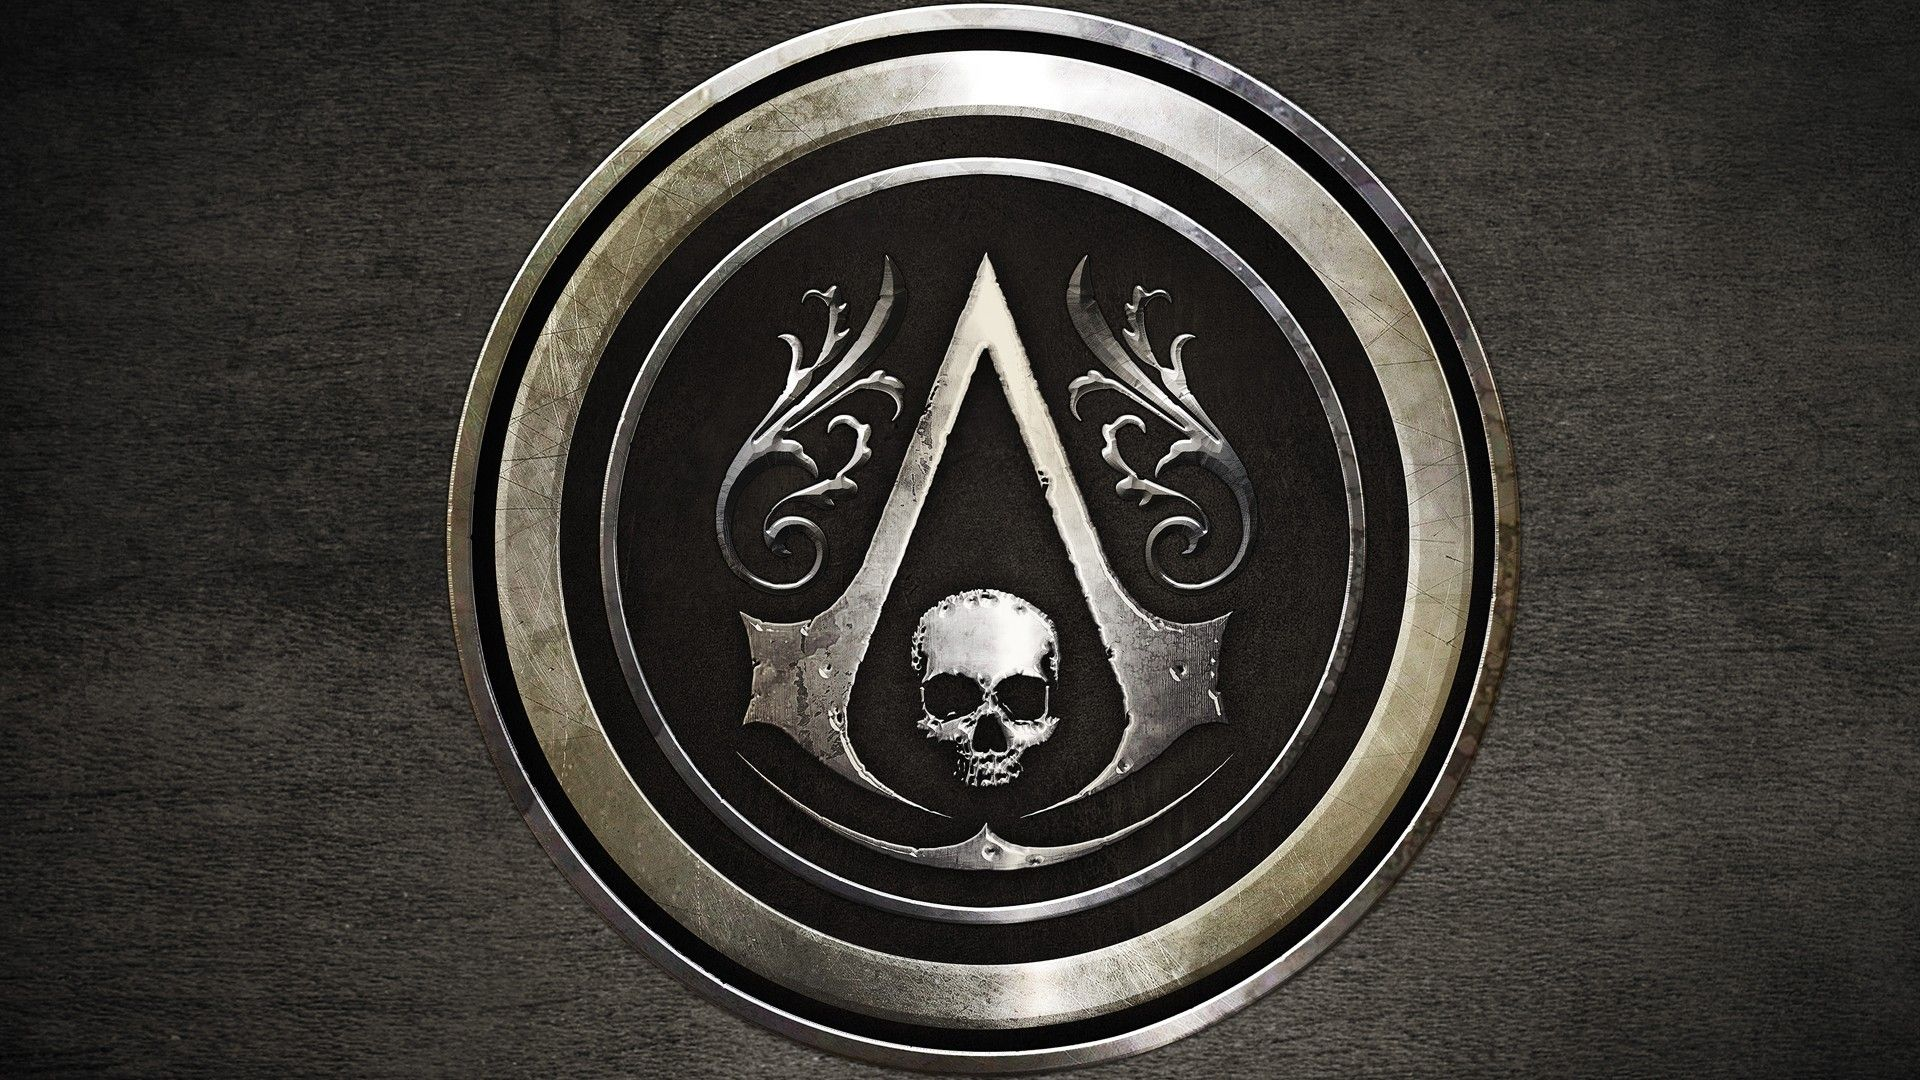 Assassin's Creed IV Black Flag Metal Plate Wallpaper